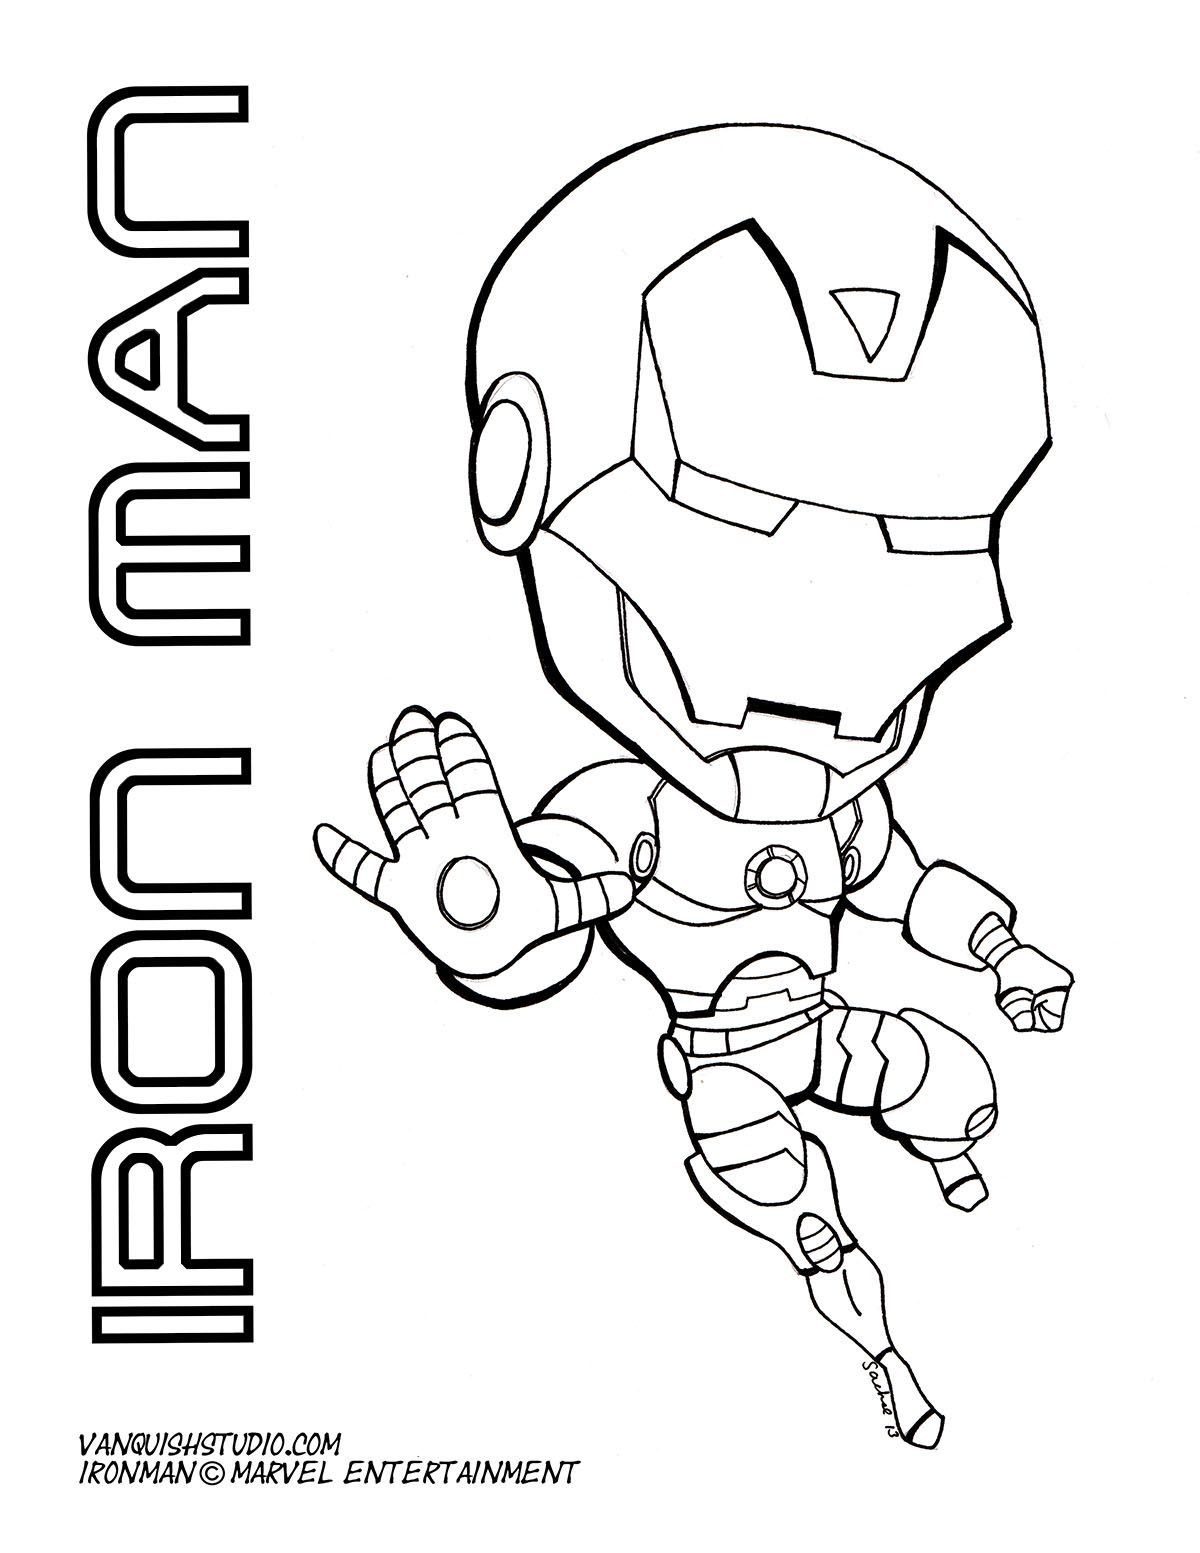 Ironman Chibi Fusion Drawing Combines Japanese Style With American Influence Superhero Coloring Pages Superman Coloring Pages Superhero Coloring